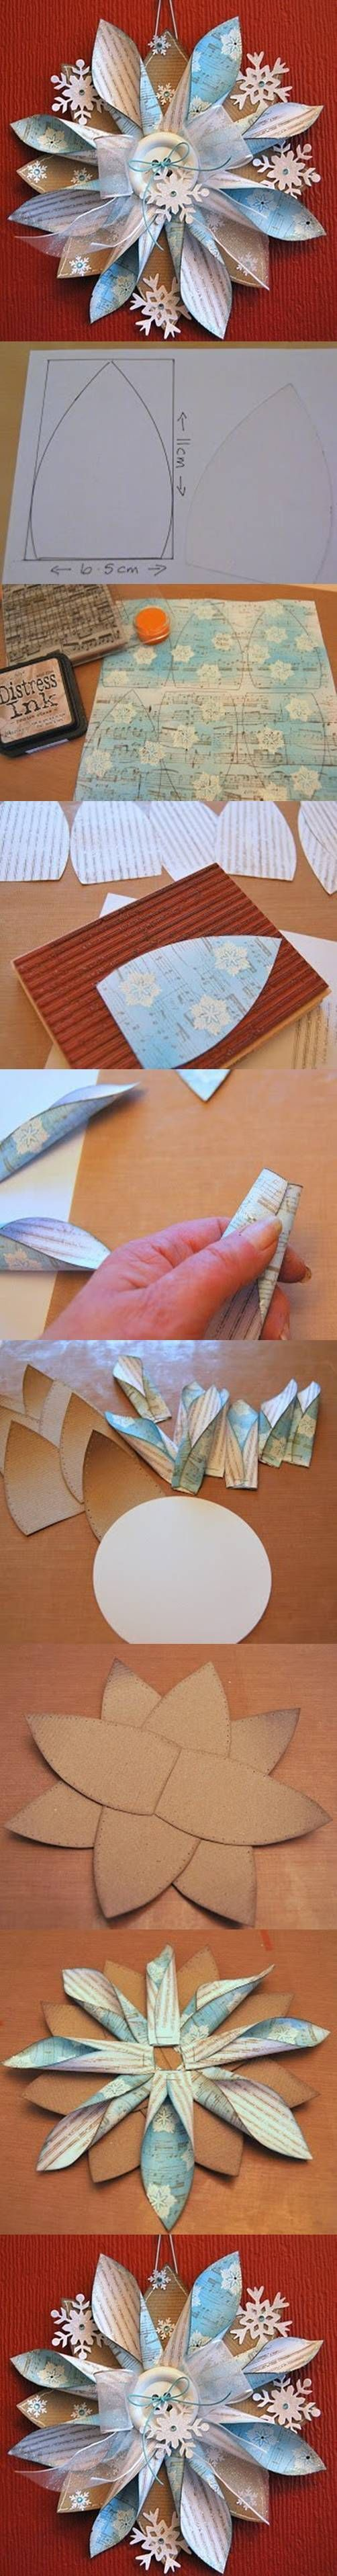 DIY Paper Flower Ornaments: